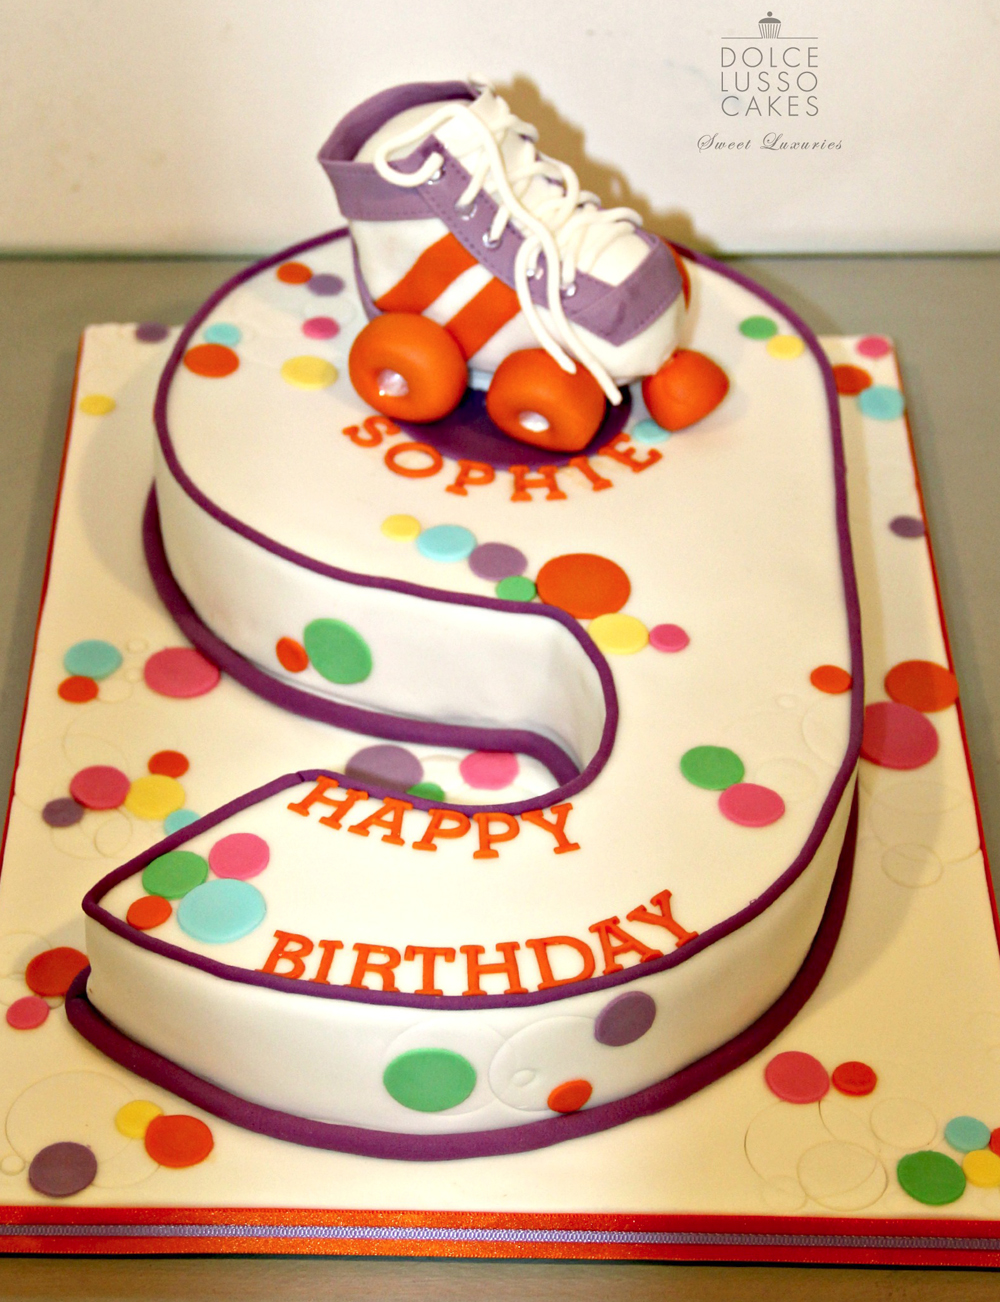 Dolce Lusso Cakes number9 skate celebration purple birthday cake